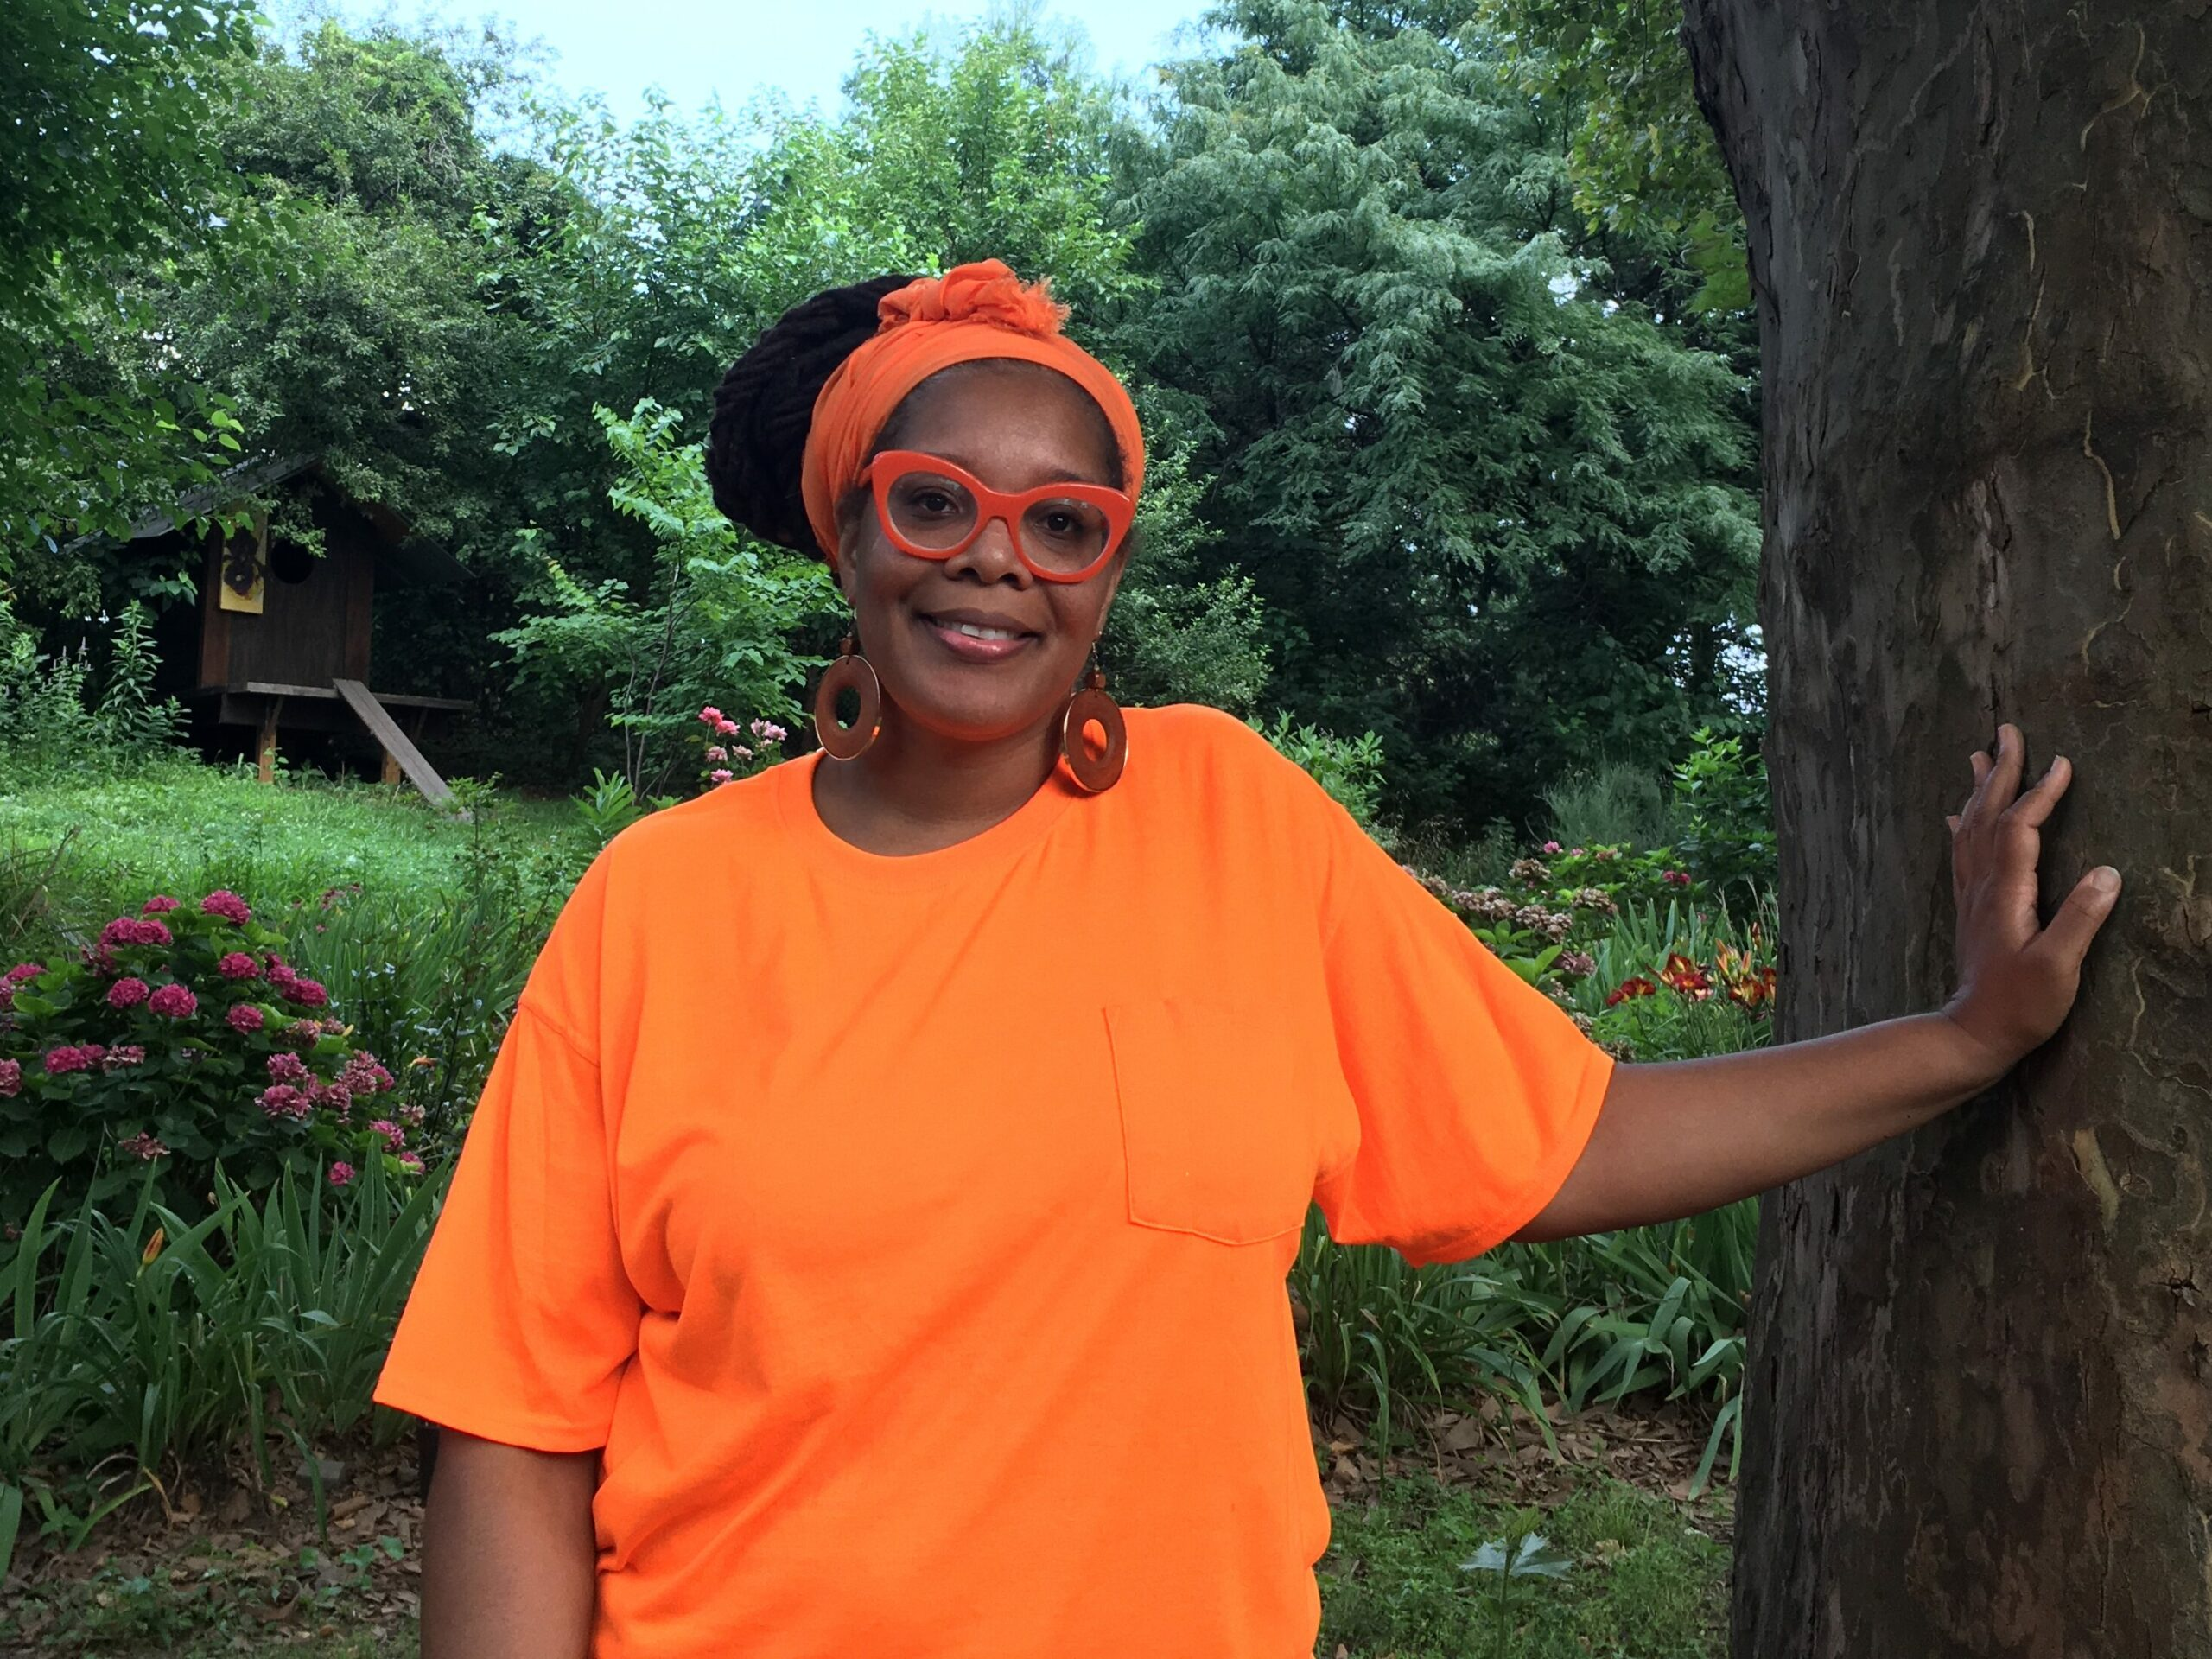 Dr. Melissa Barber, a co-founder of the community-based environmental justice organization South Bronx Unite, in one of the few green spaces in New York City's formerly redlined South Bronx neighborhood on July 24, 2021. Credit: Delger Erdenesanaa